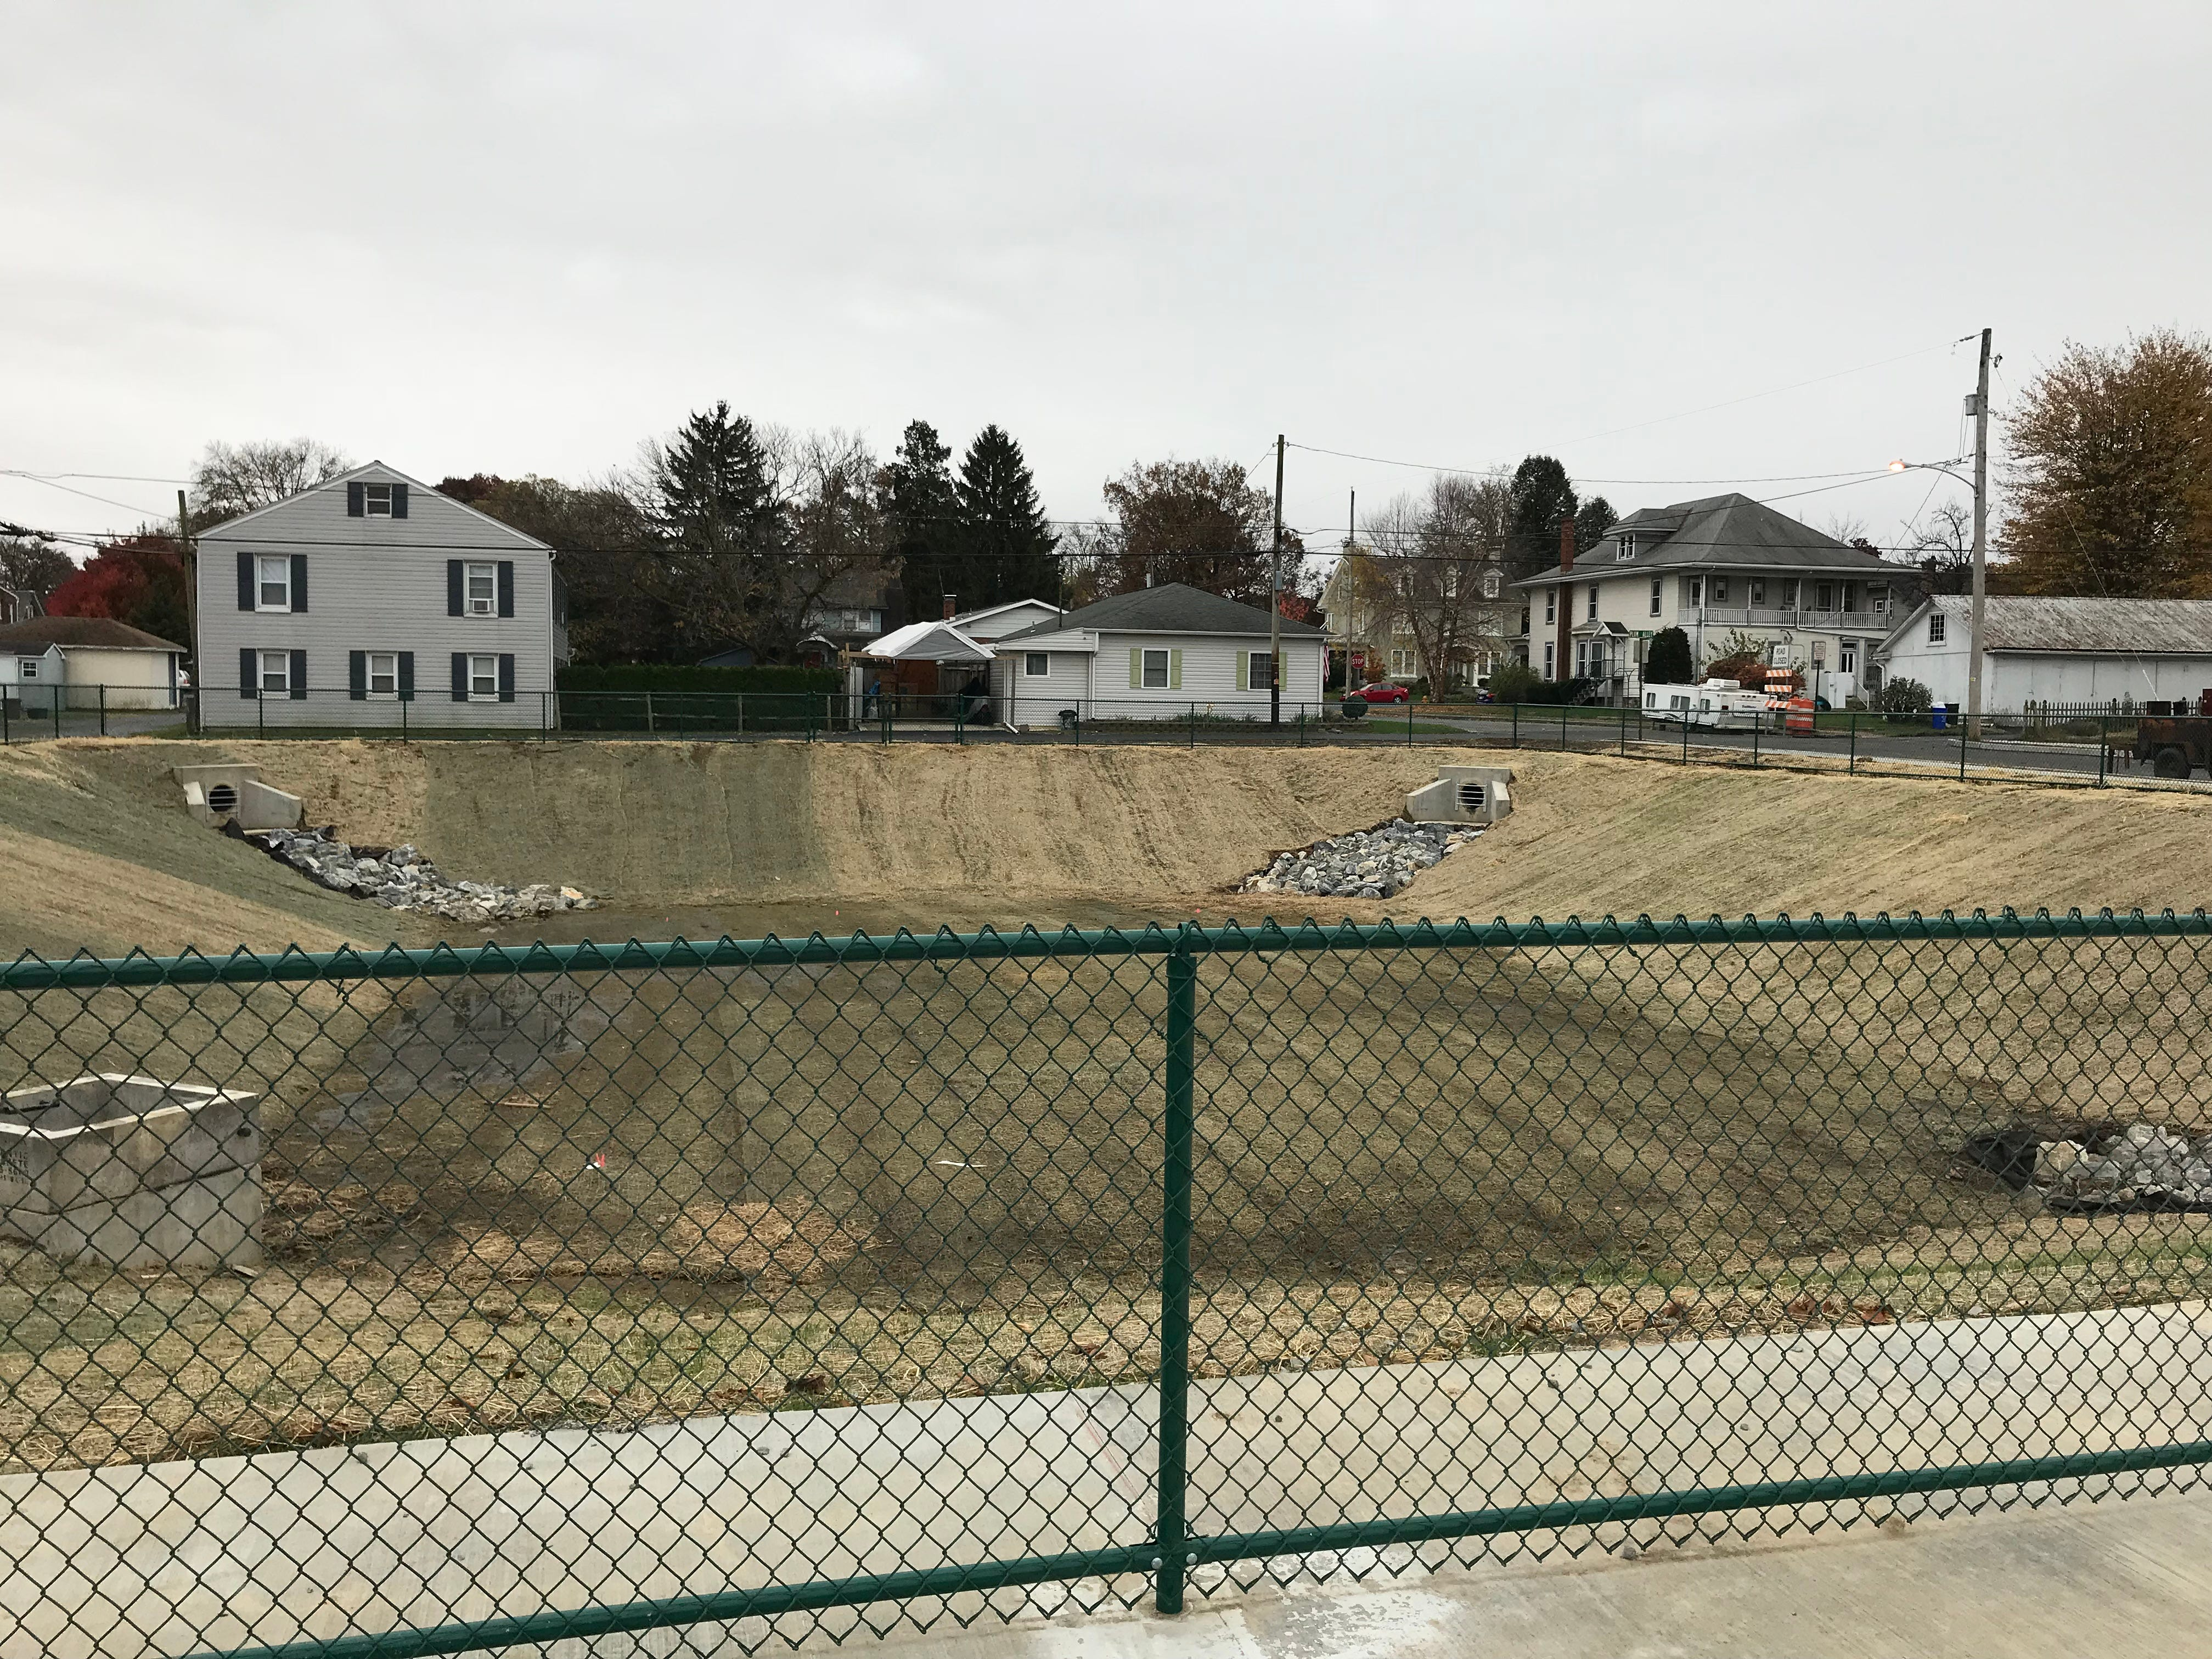 The completed stormwater management system constructed in the 300 block of East Cherry Street, Palmyra, Nov. 9, 2018. Cherry Street was re-opened in the area after a four-year closure due to sinkhole damage.